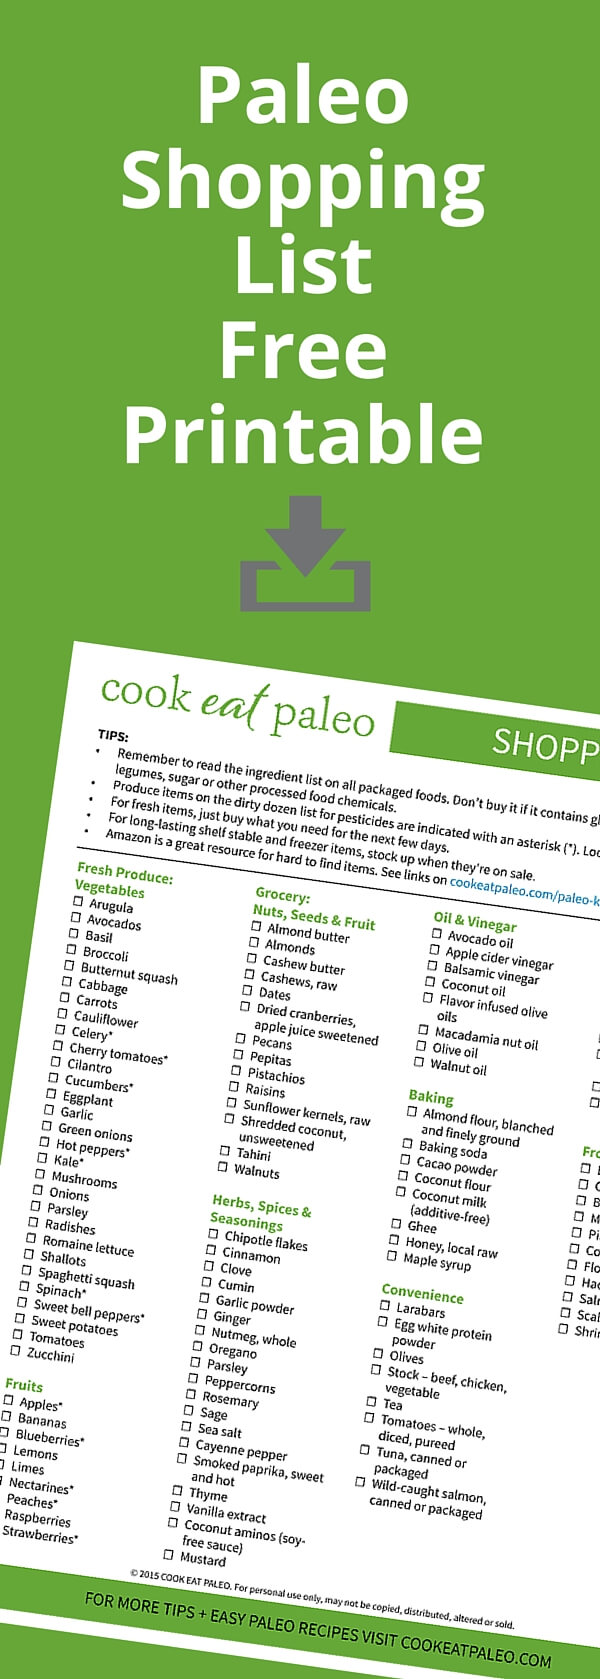 Stocking your paleo pantry? Here's a paleo shopping list for beginners including paleo must haves and tips on what to avoid.